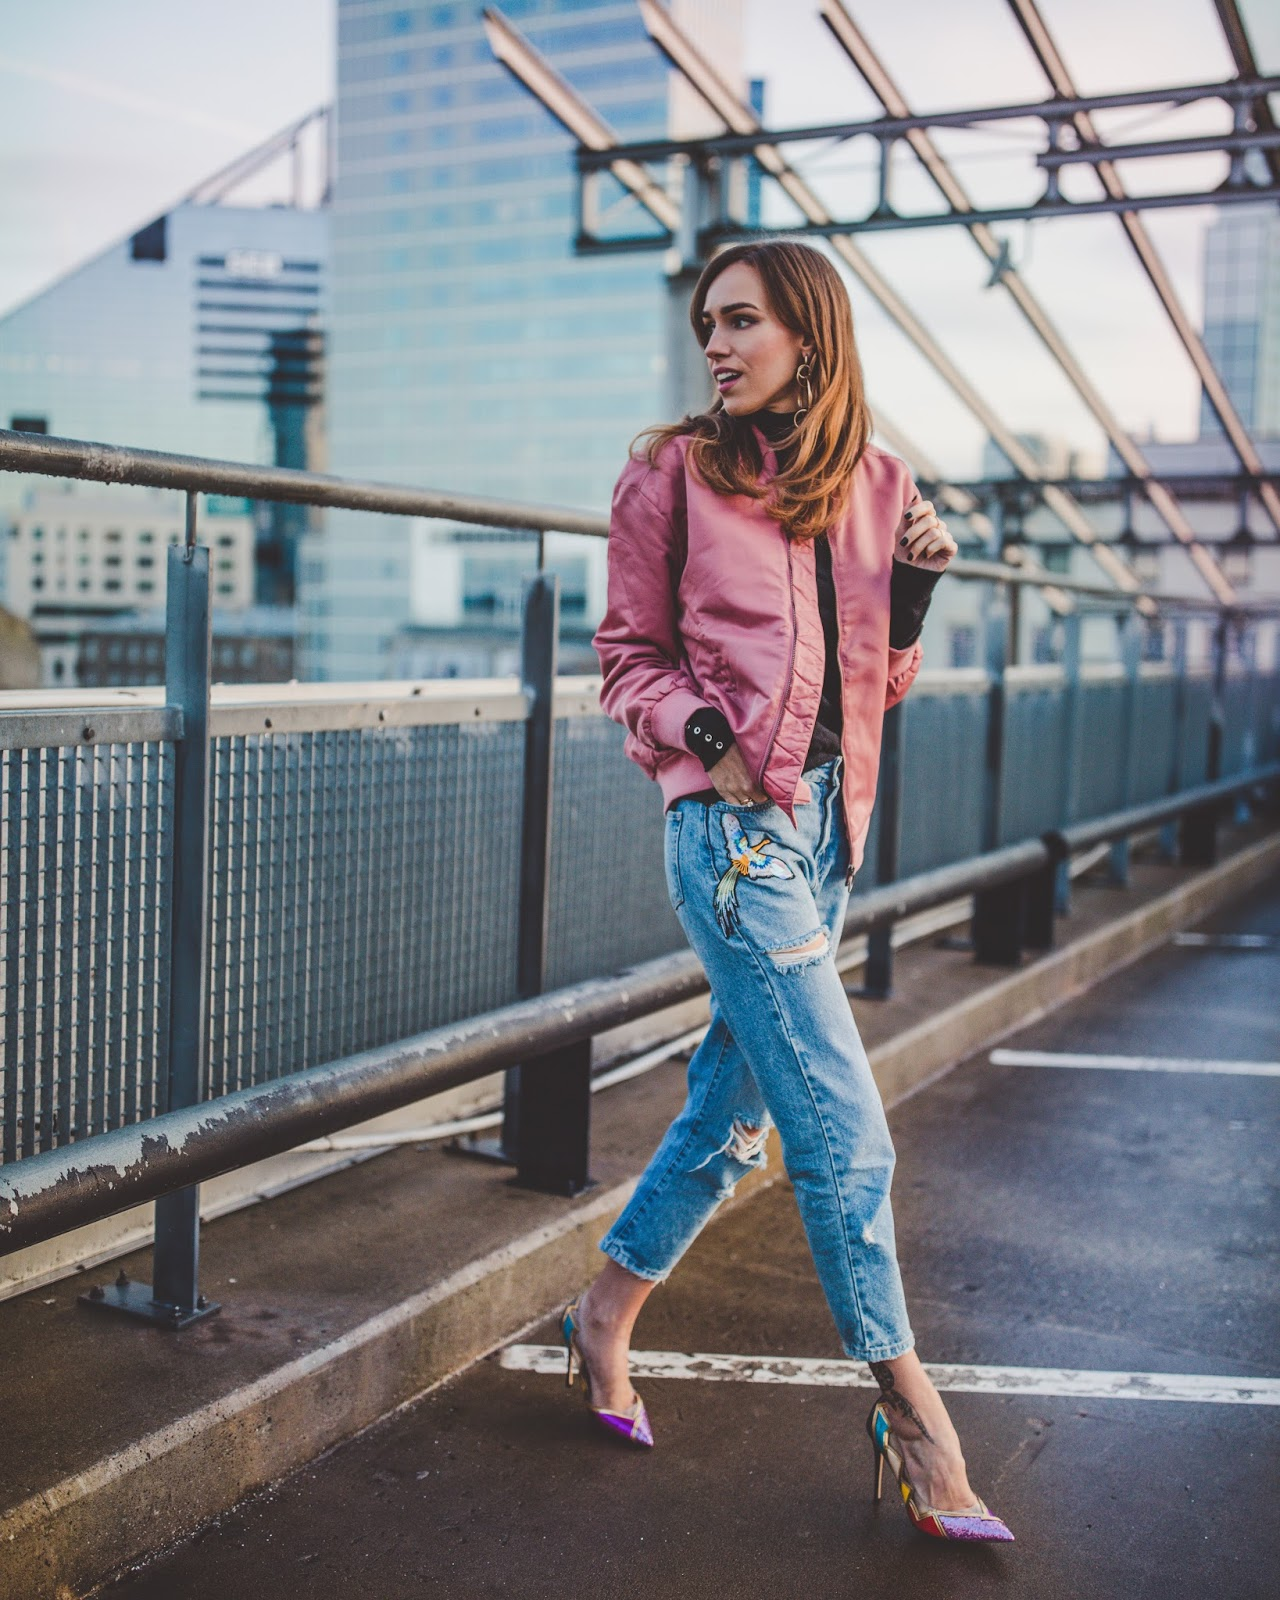 pink bomber jacket jeans pumps spring outfit